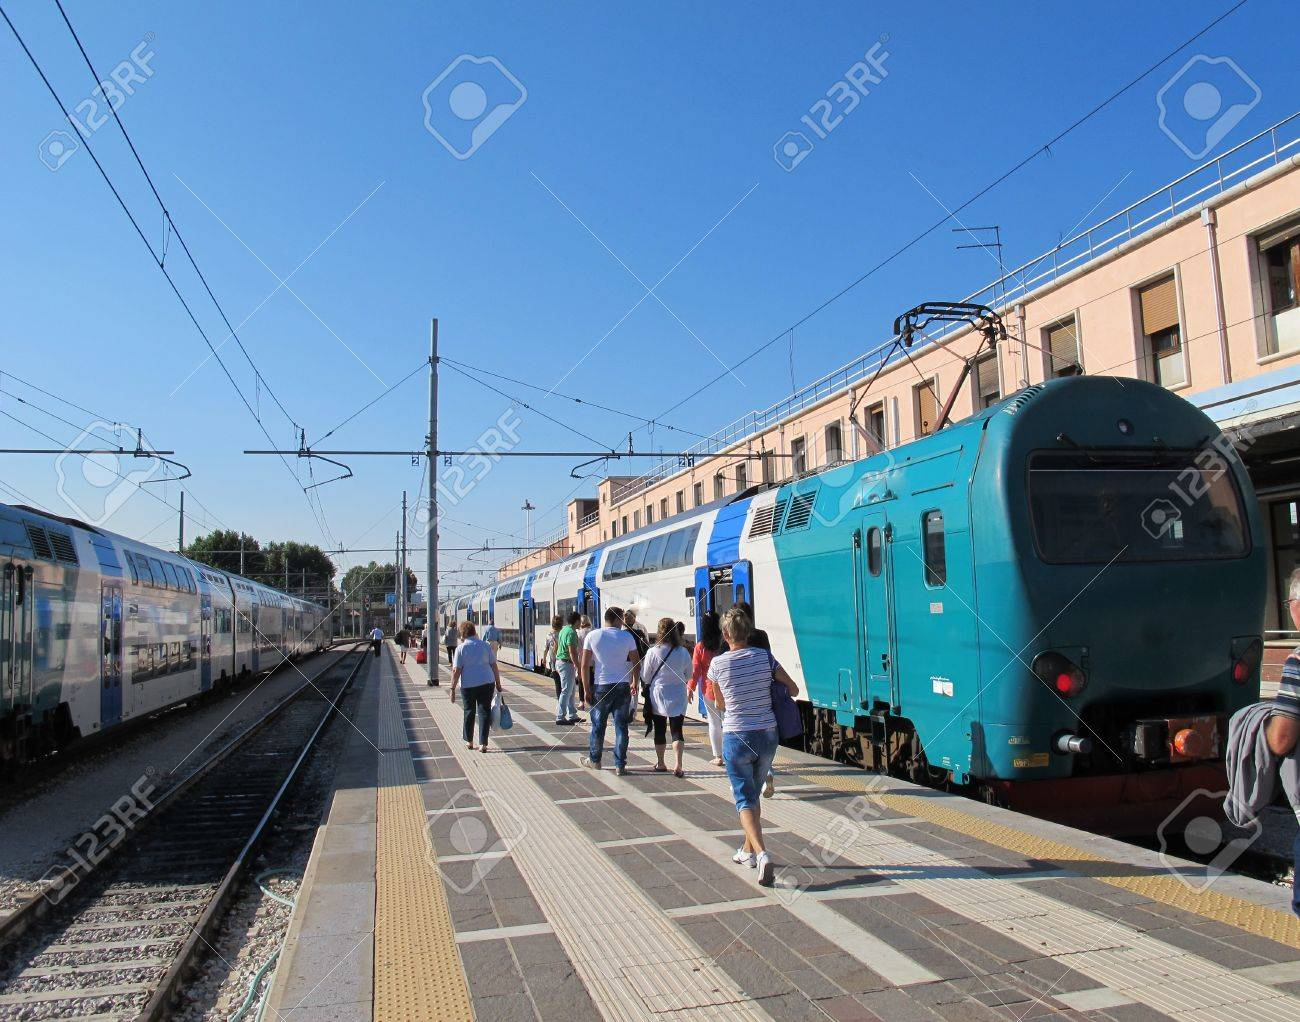 hurried tourists and travellers during the train stop at the station Stock Photo - 16713849